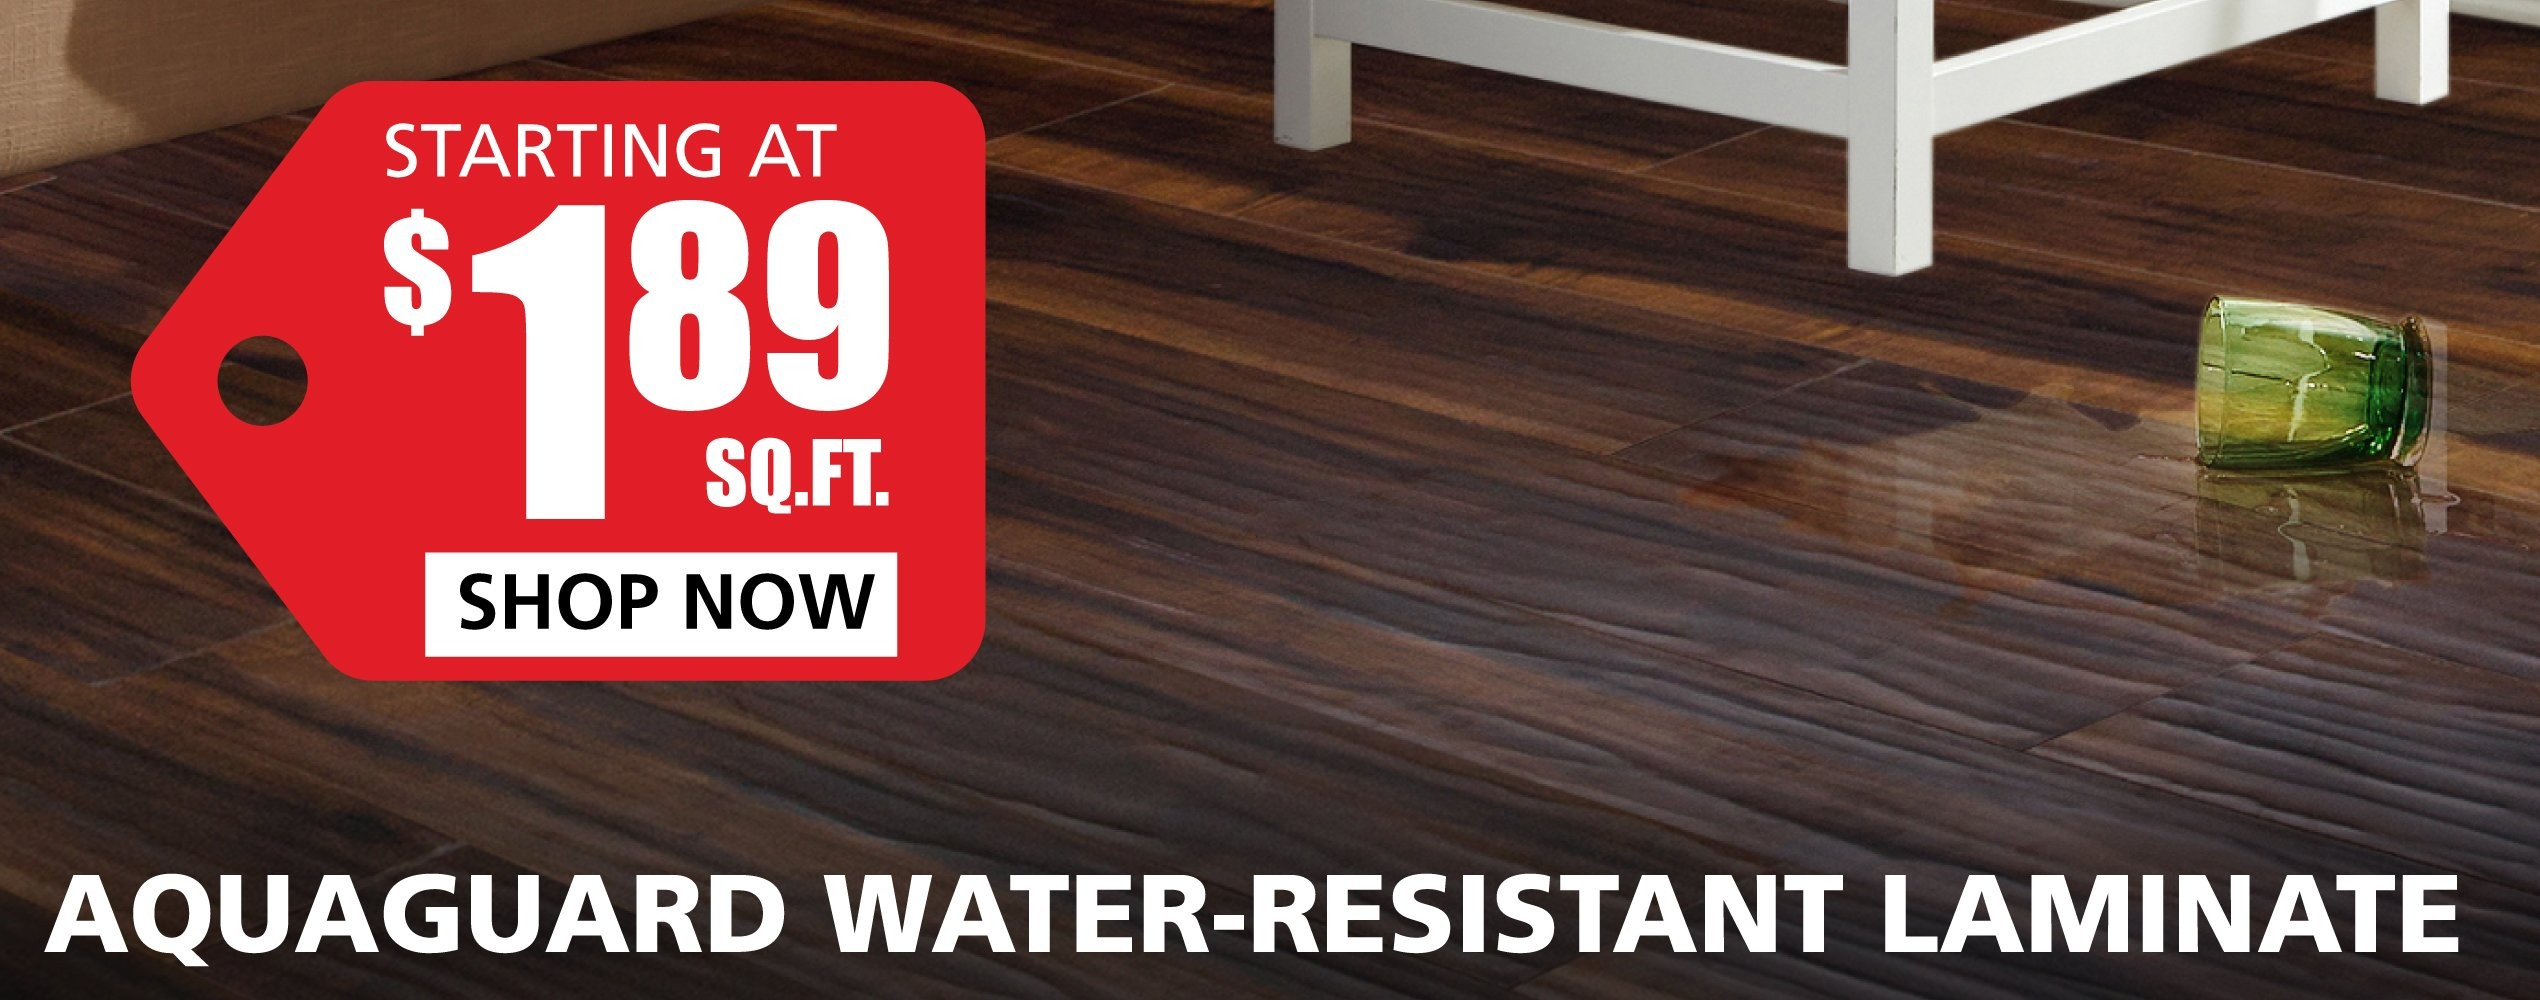 Water Resistant Laminate starting at $2.99 per square foot